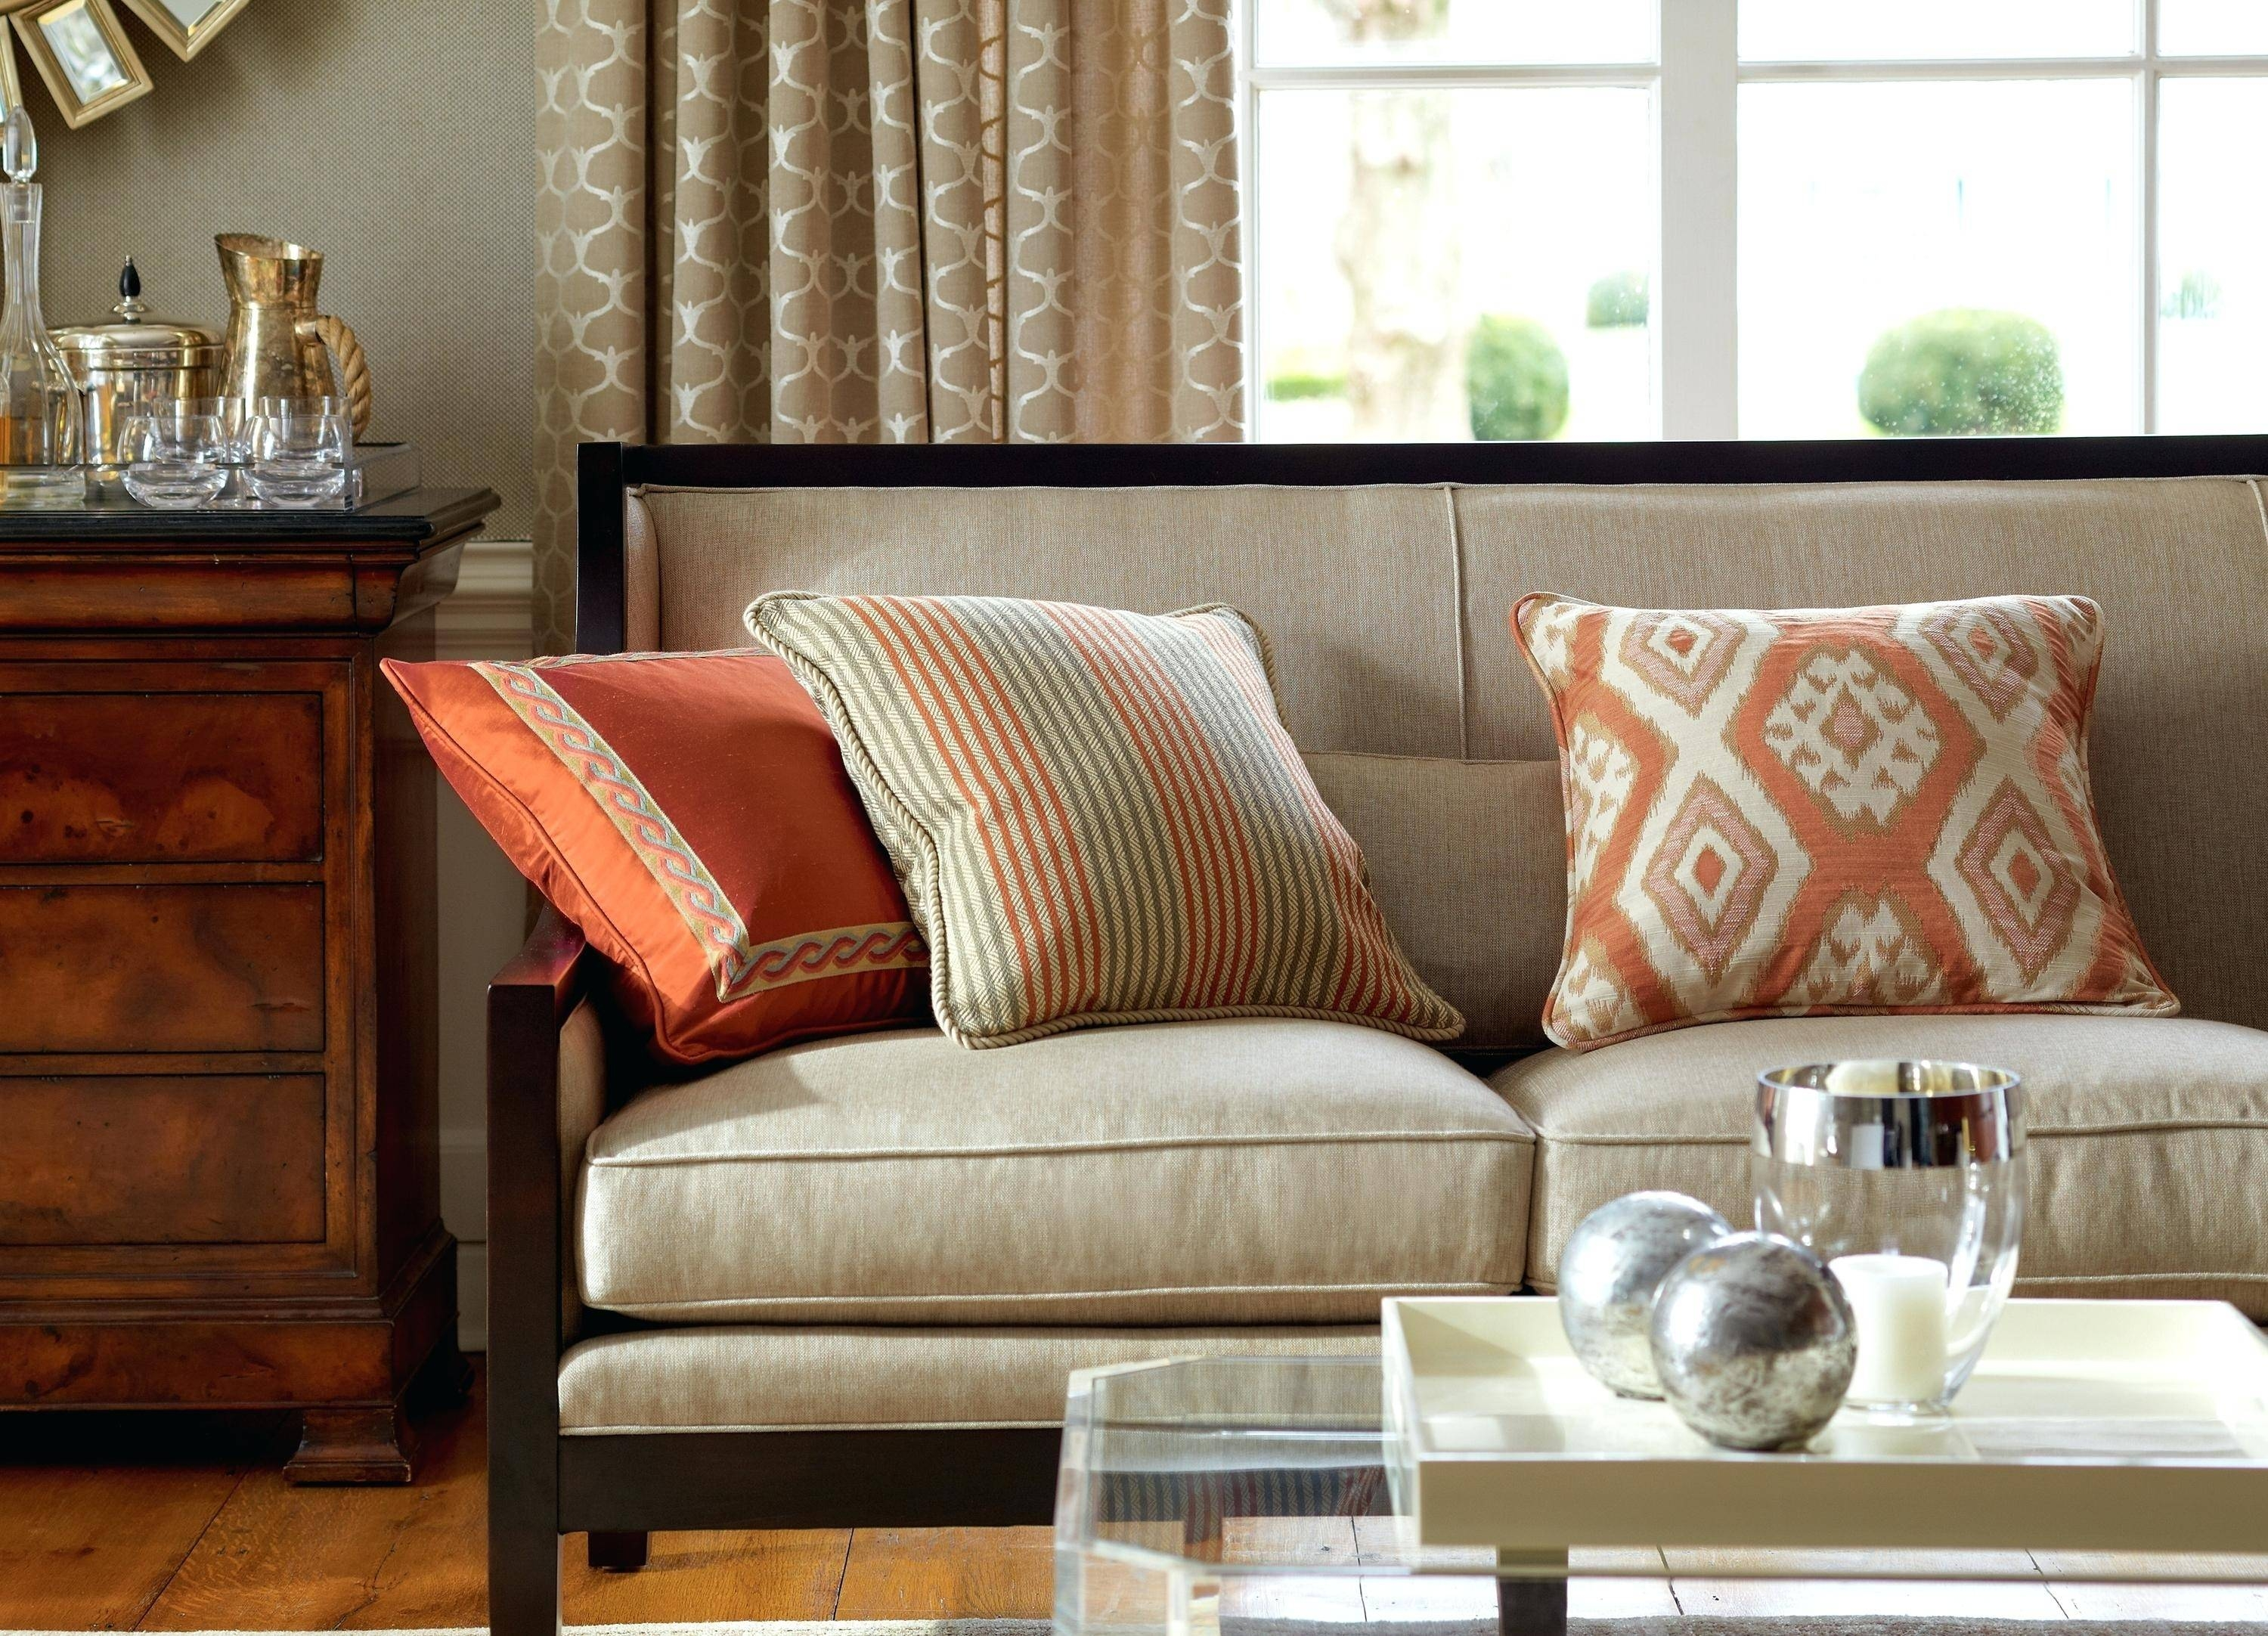 Pillows : Oversized Pillows For Couch Within Large Couch Pillows for Oversized Sofa Pillows (Image 21 of 30)